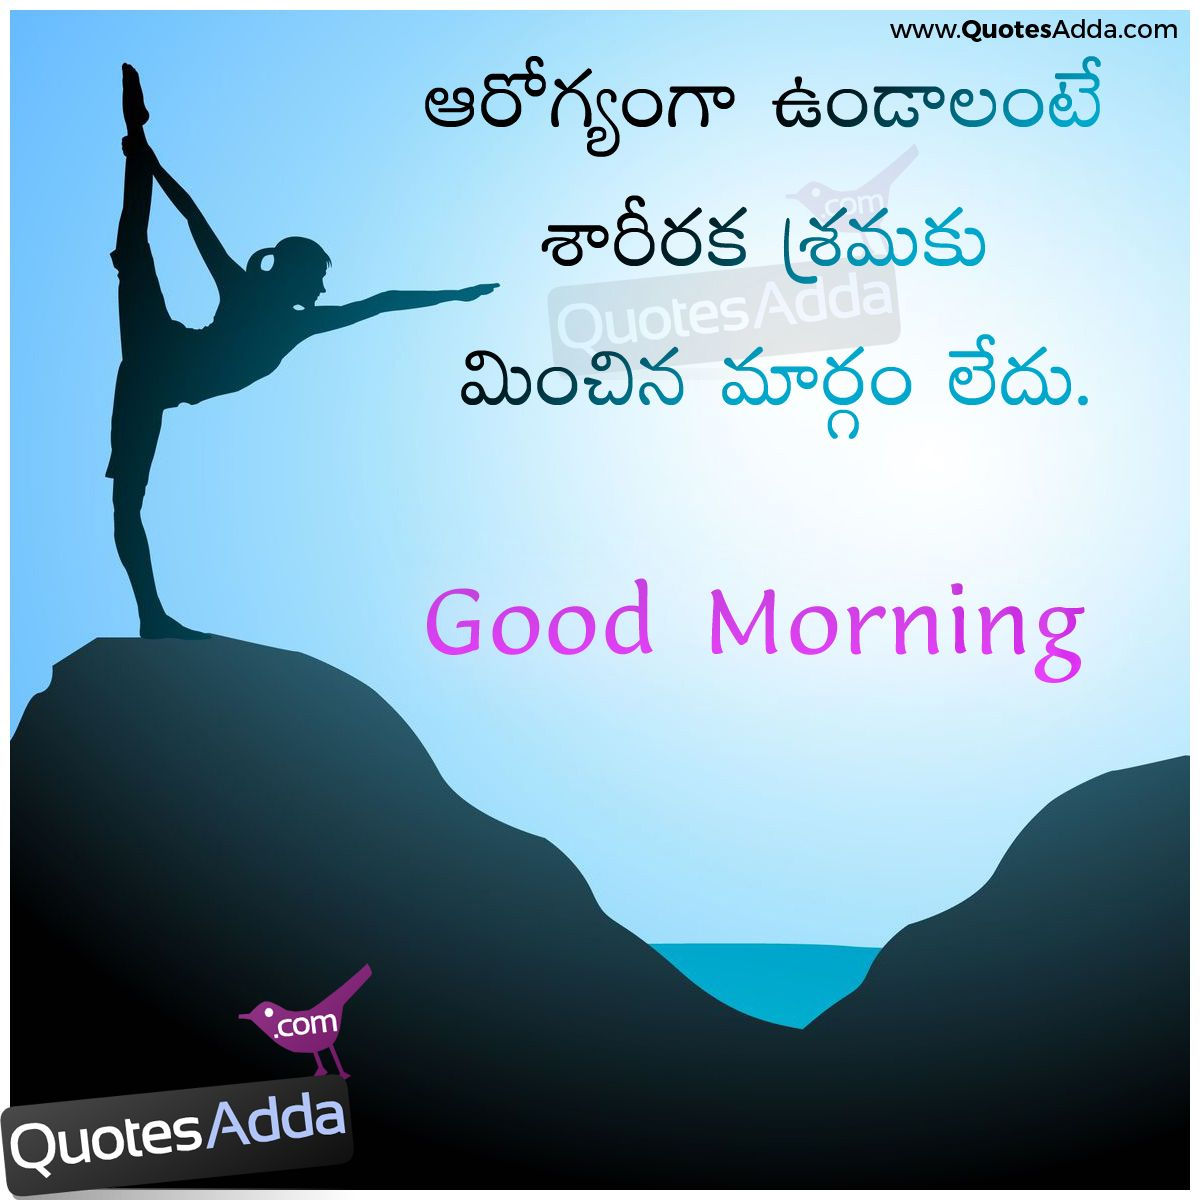 Telugu Most Unseen Good Morning Greetings And Messages Good Morning Greetings Good Morning Messages Words Quotes